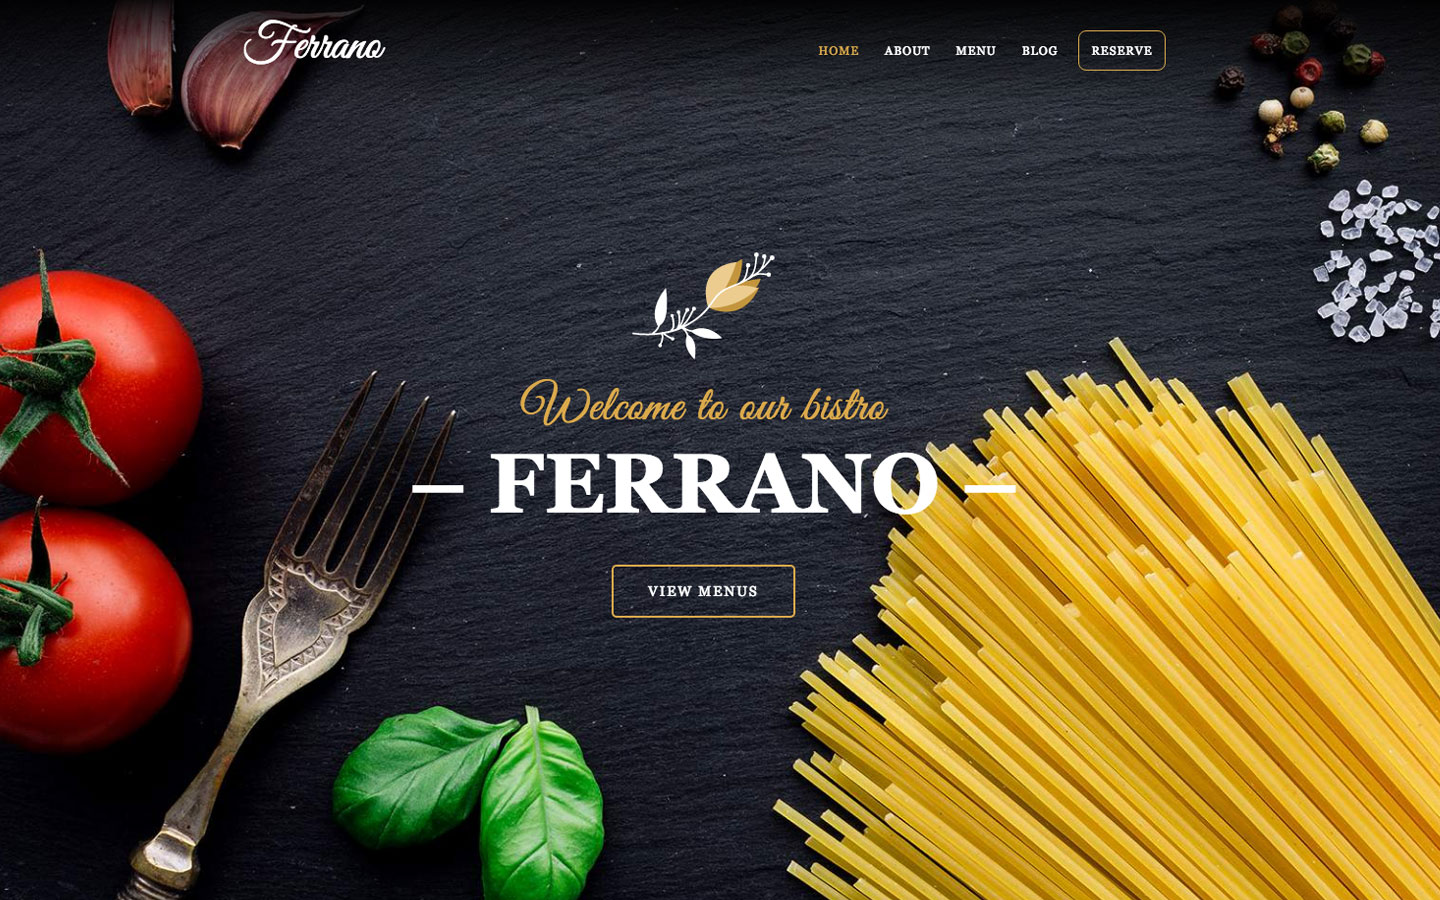 Ferrano CMS restaurant website template